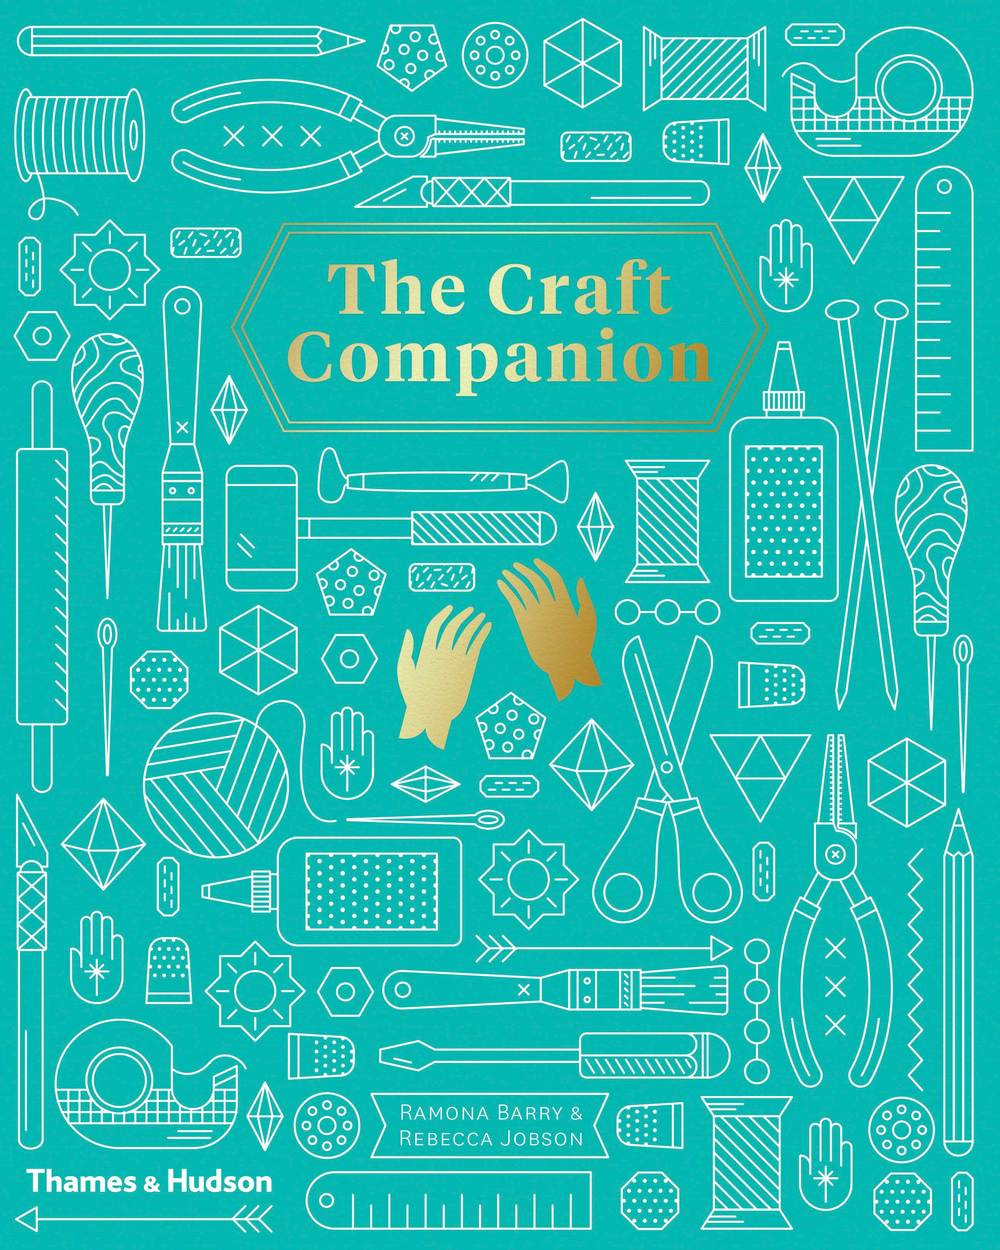 The Craft Companion: The A-Z Guide to Modern Crafting